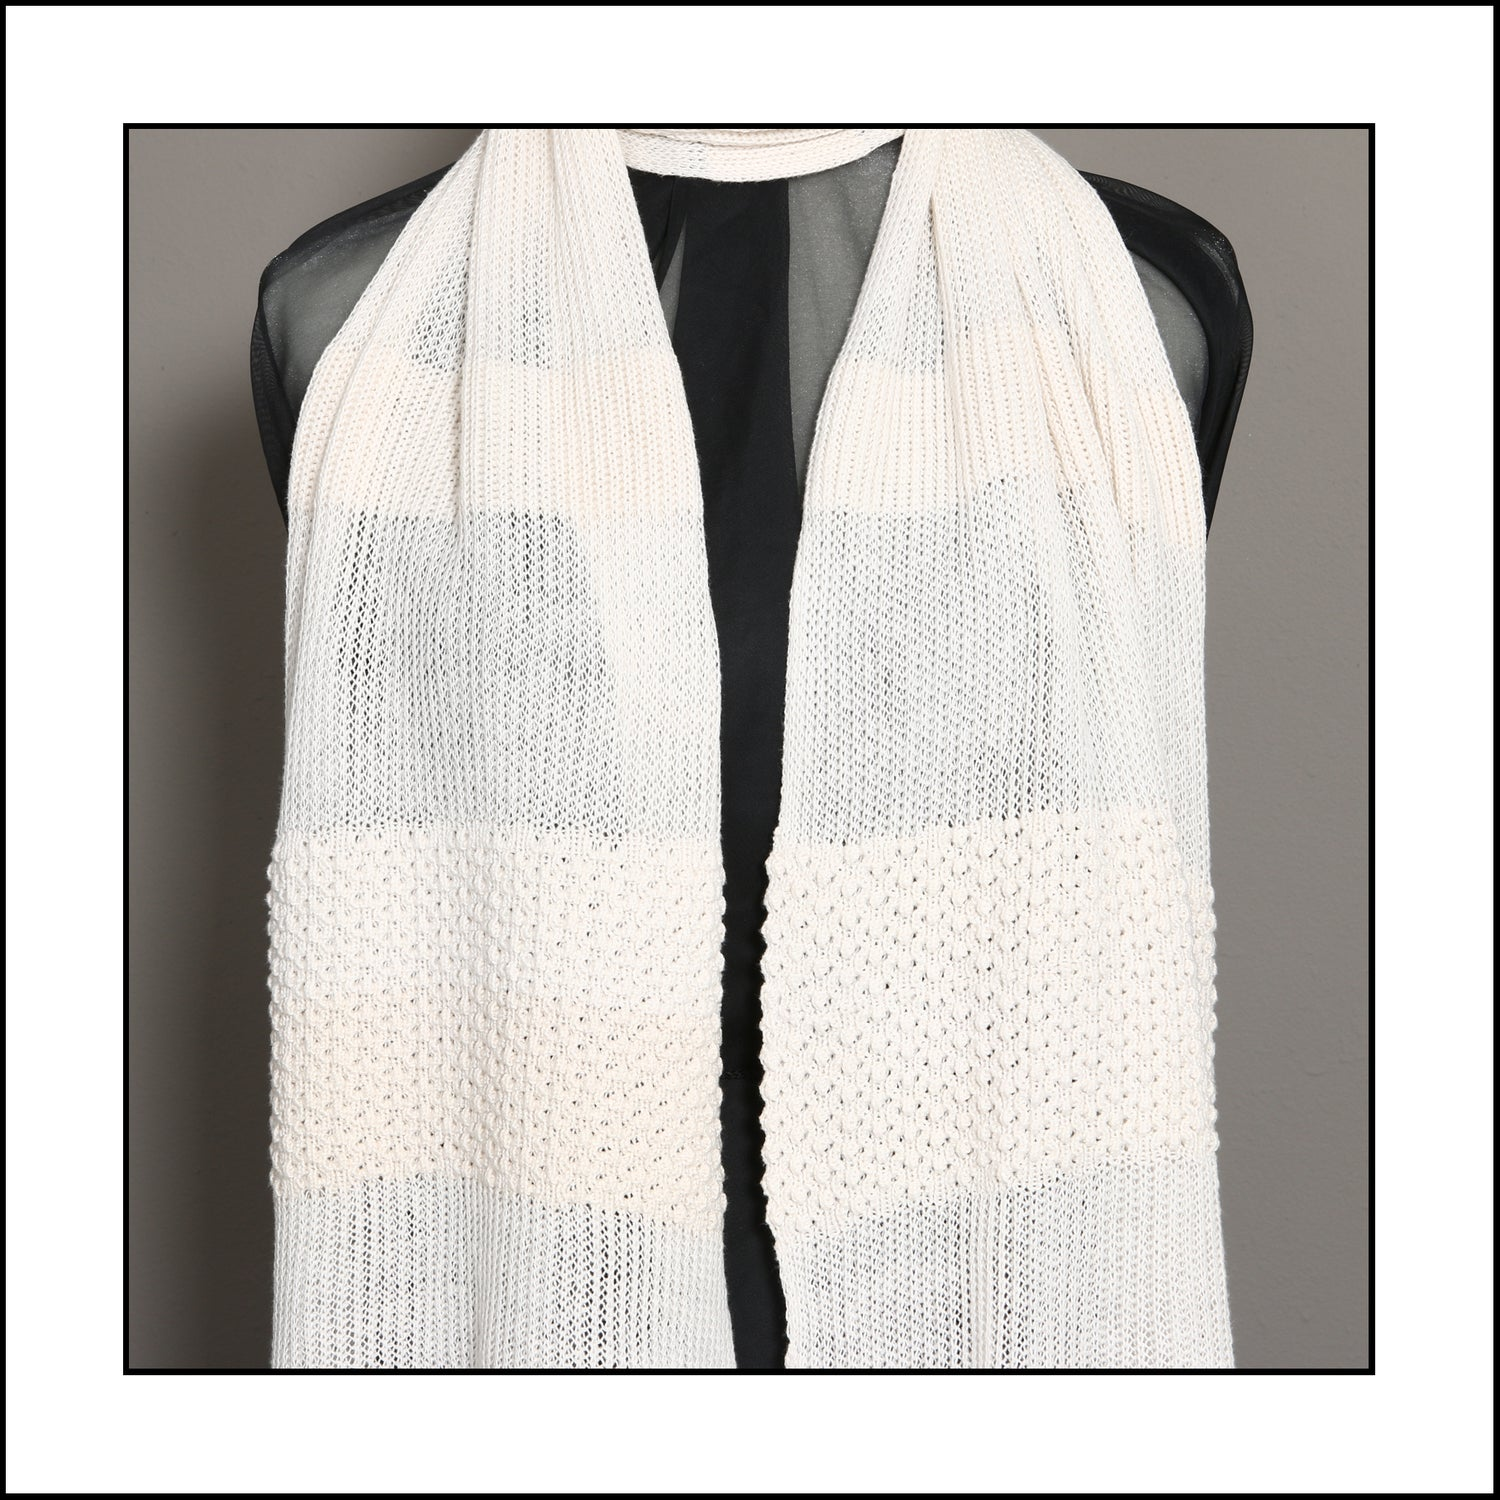 Image of Pure Cotton Scarf with Textured and Fine Detail (doublebed knit)